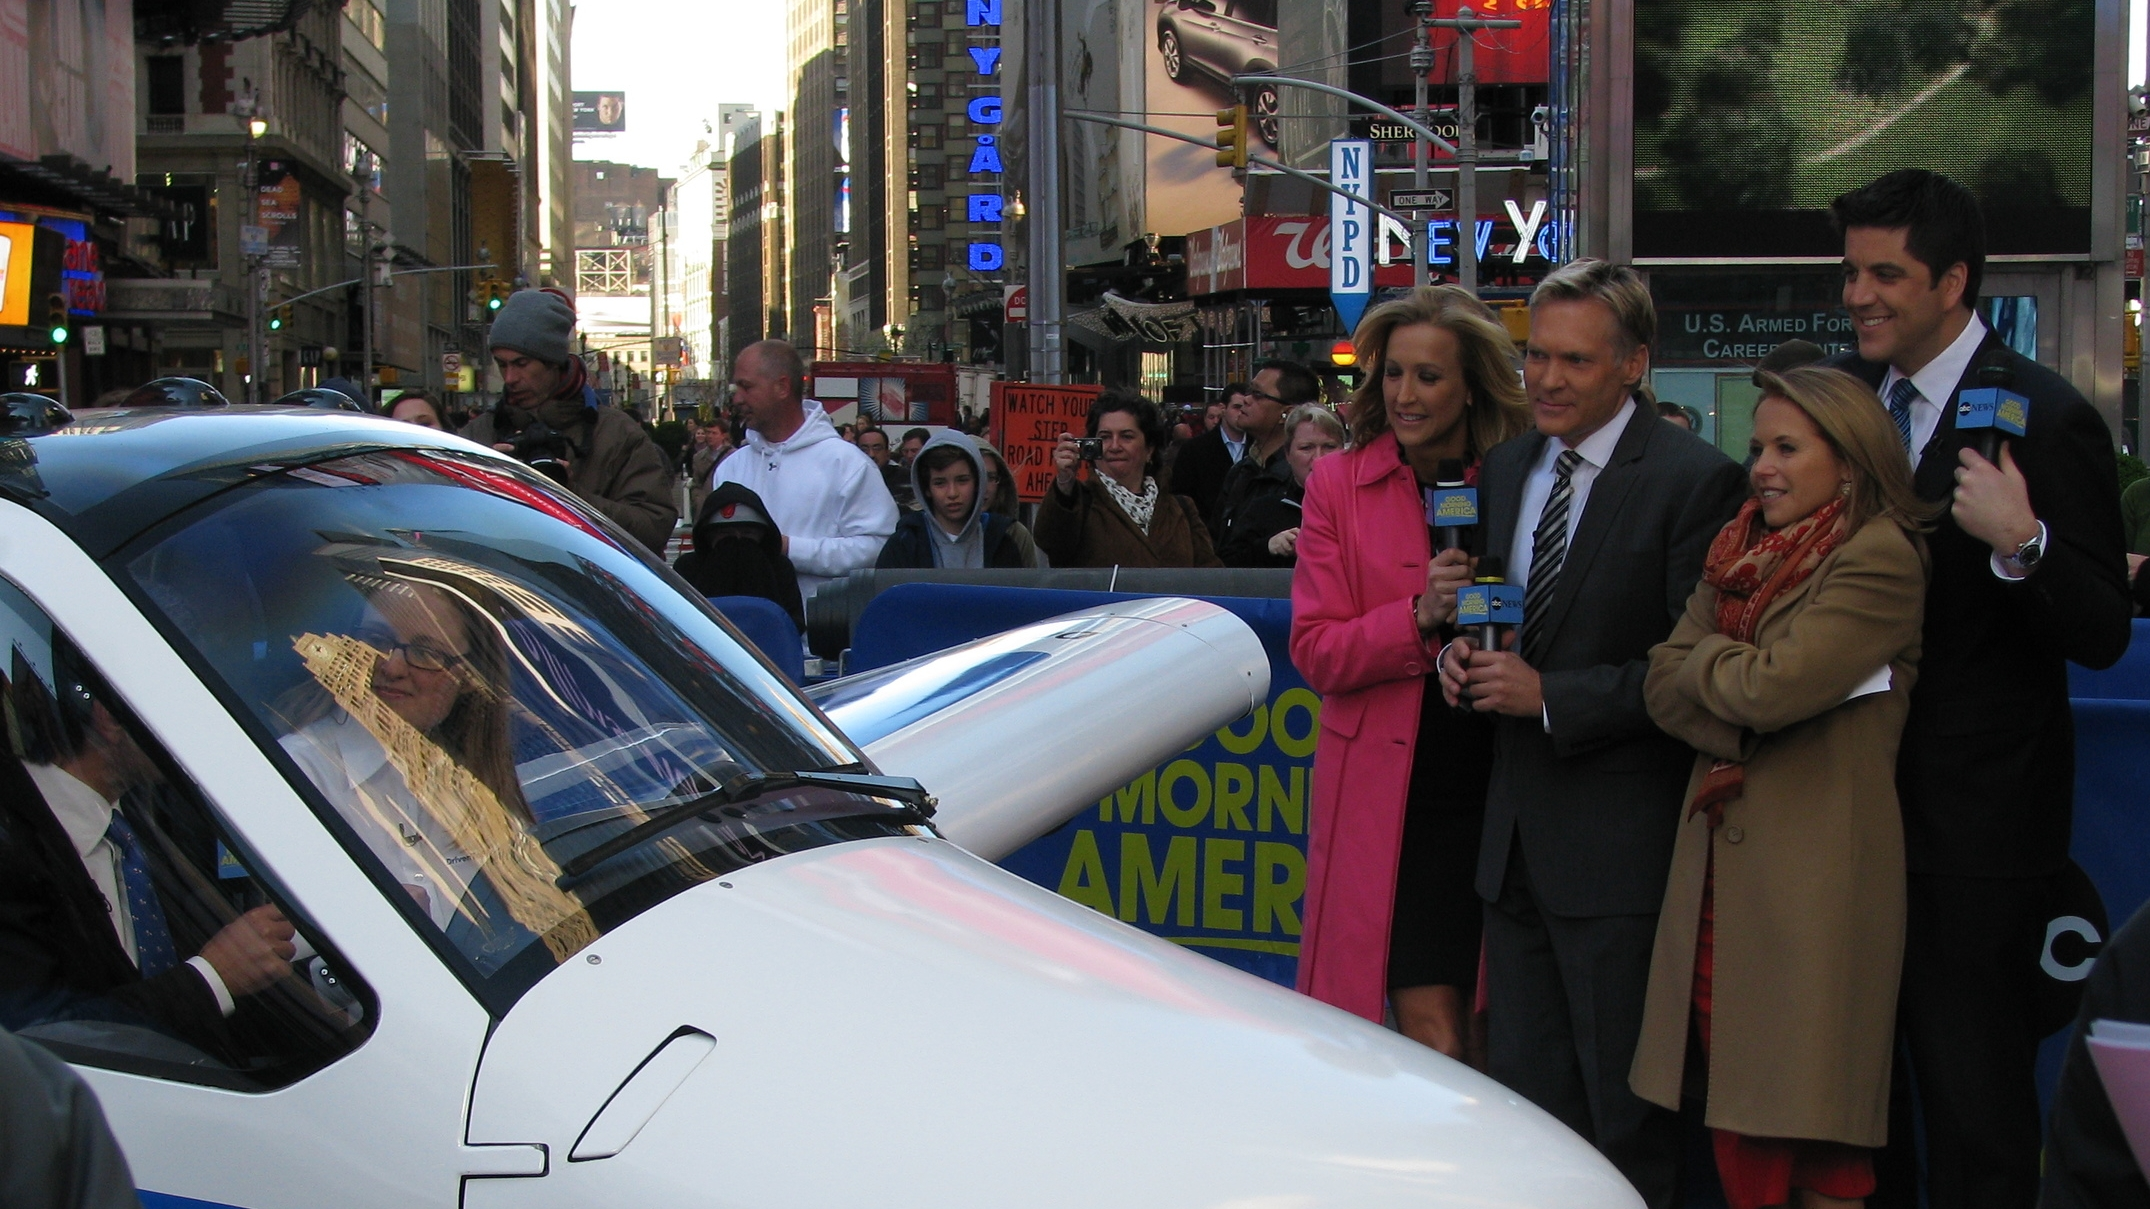 Anna demonstrating the Transition on Good Morning America in Times Square. Click image for video link.